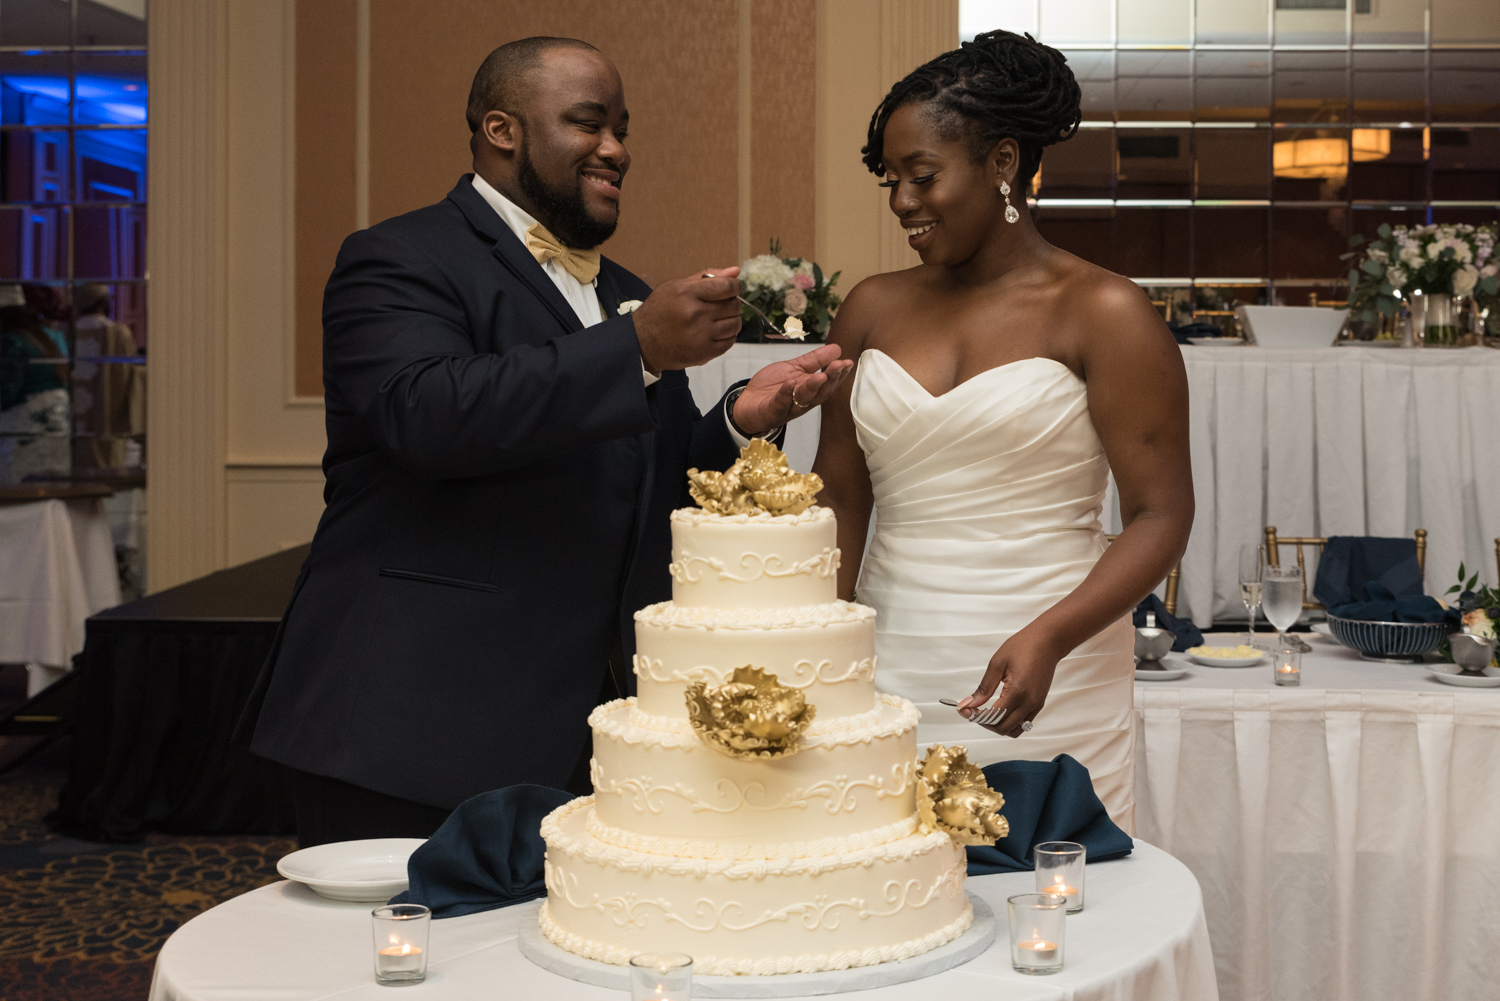 CAKE CUTTING - A symbol that you'll always provide for each other, and a great reason to show off your decorative wedding cake. Cutting the cake in front of your guests is the first task a married couple complete together.